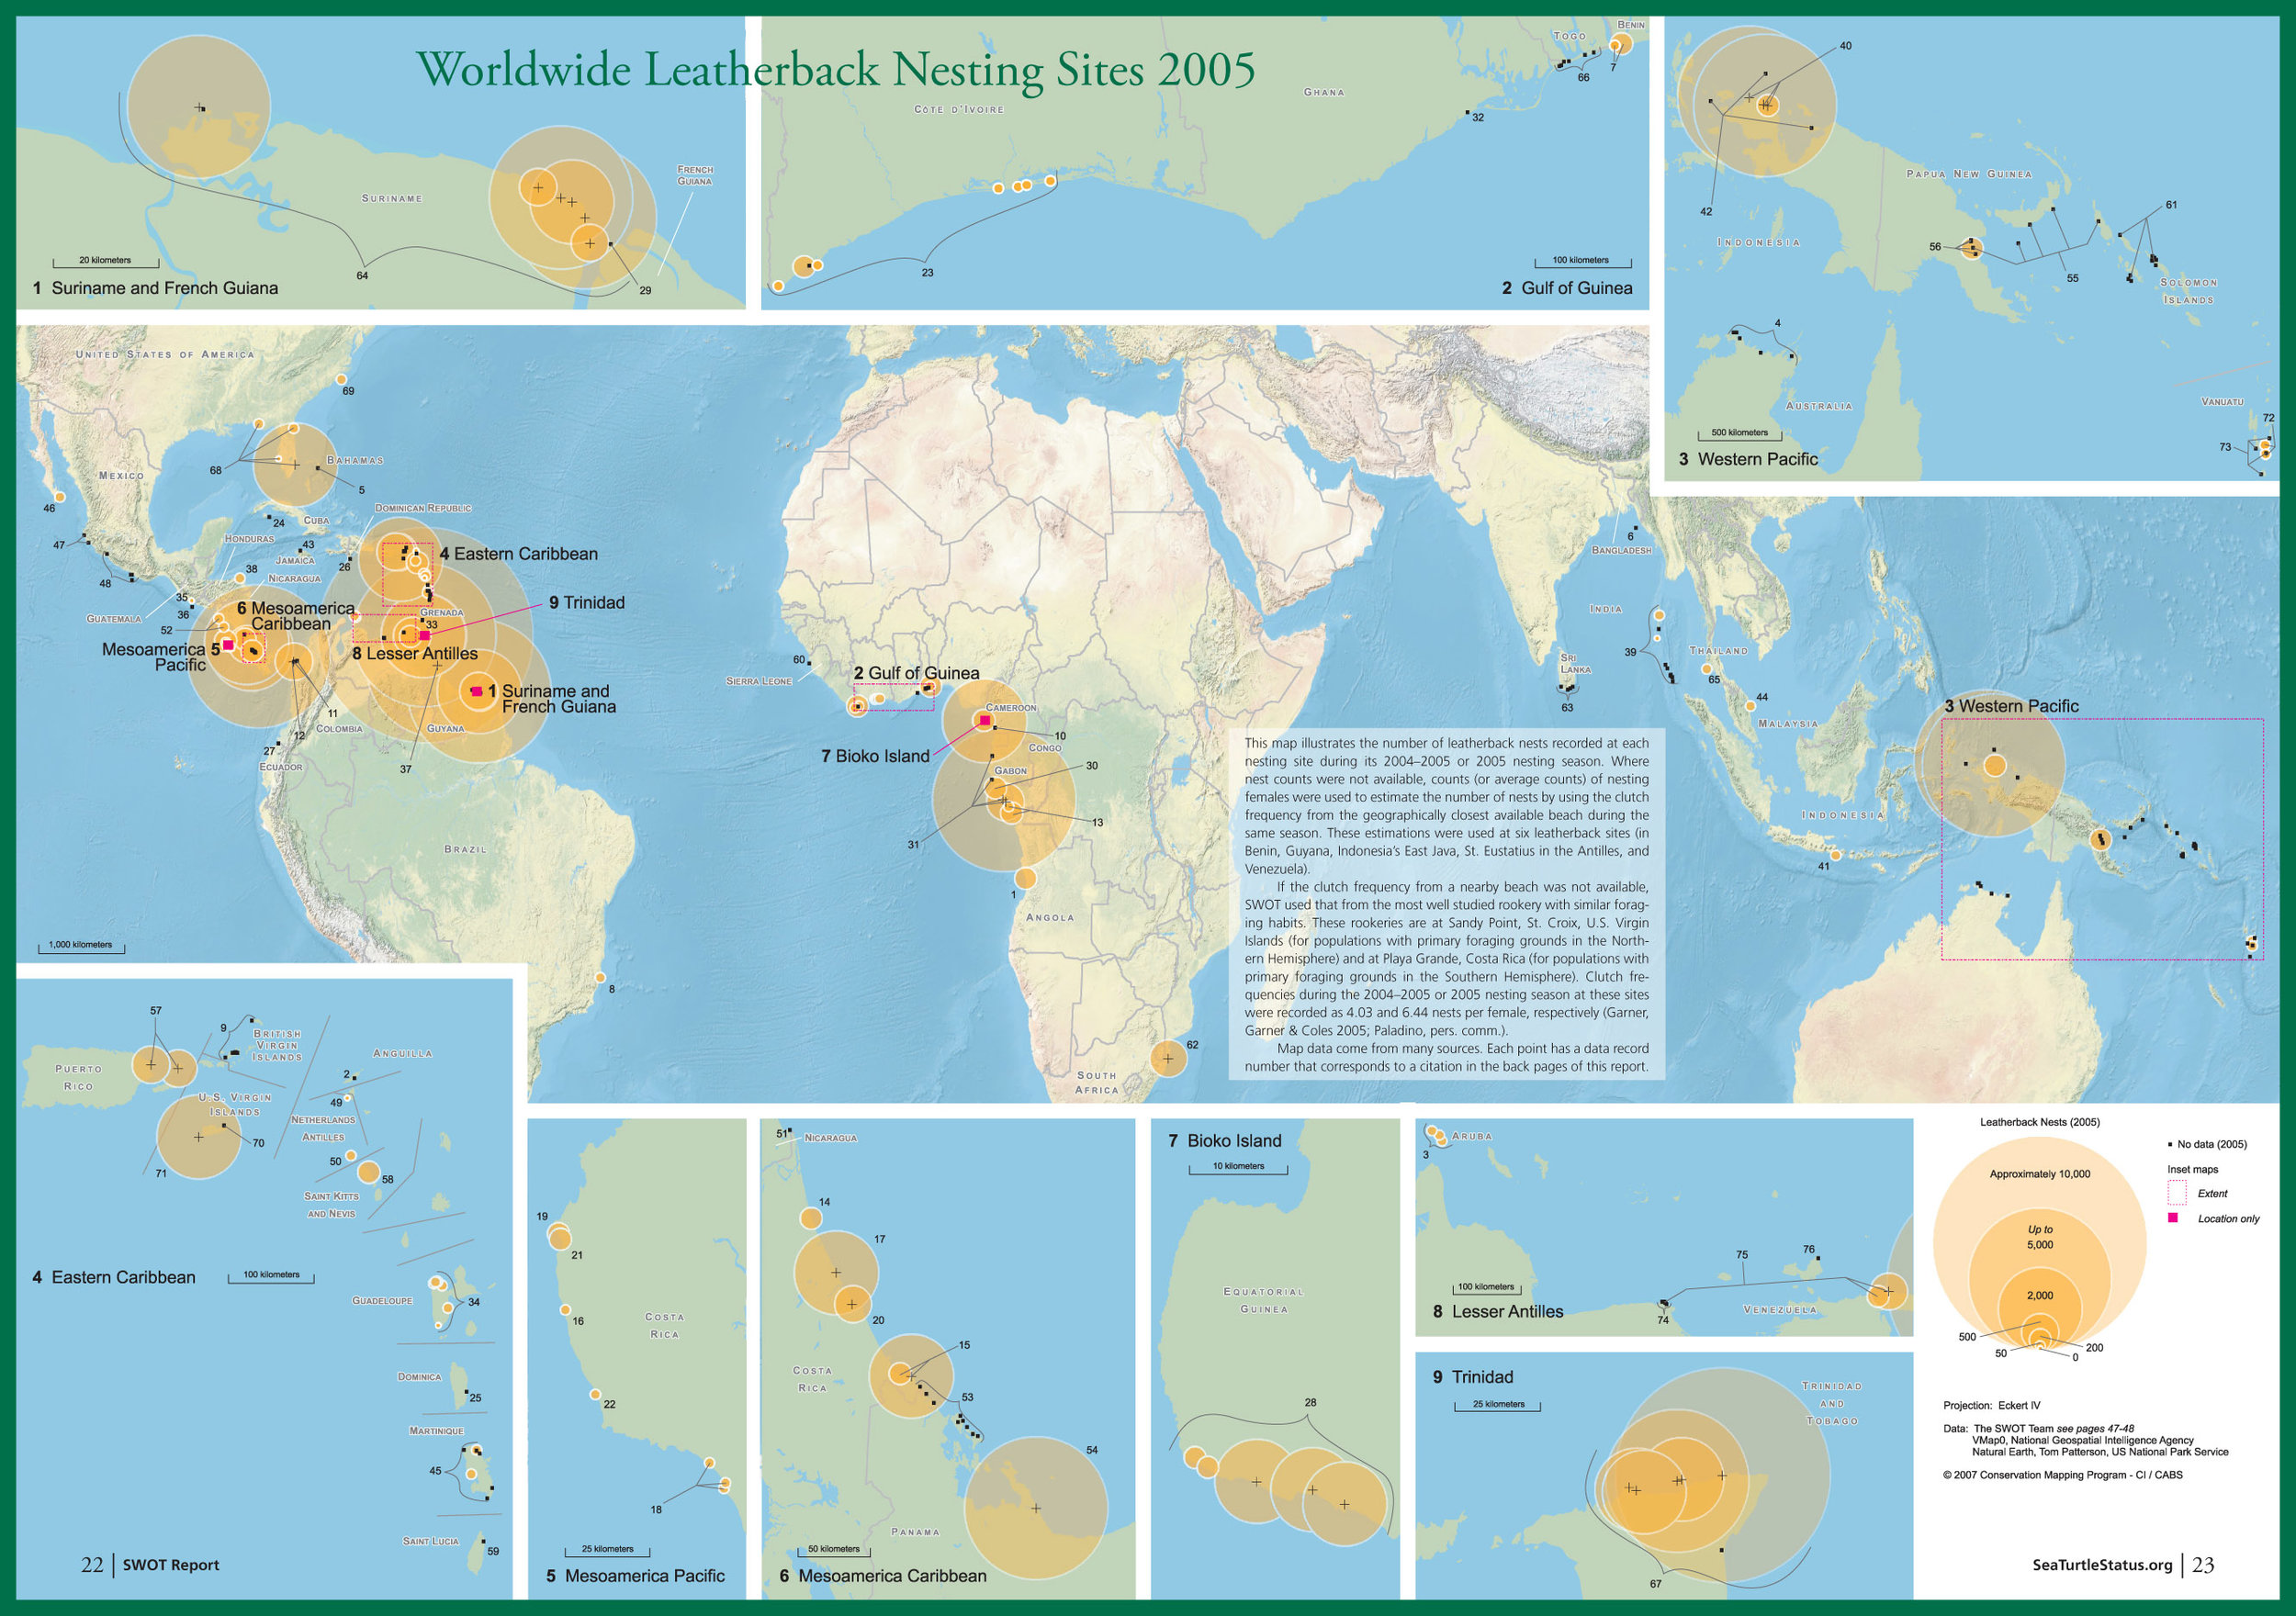 Map of global leatherback nesting sites published in 2007 in SWOT Report, vol. II.